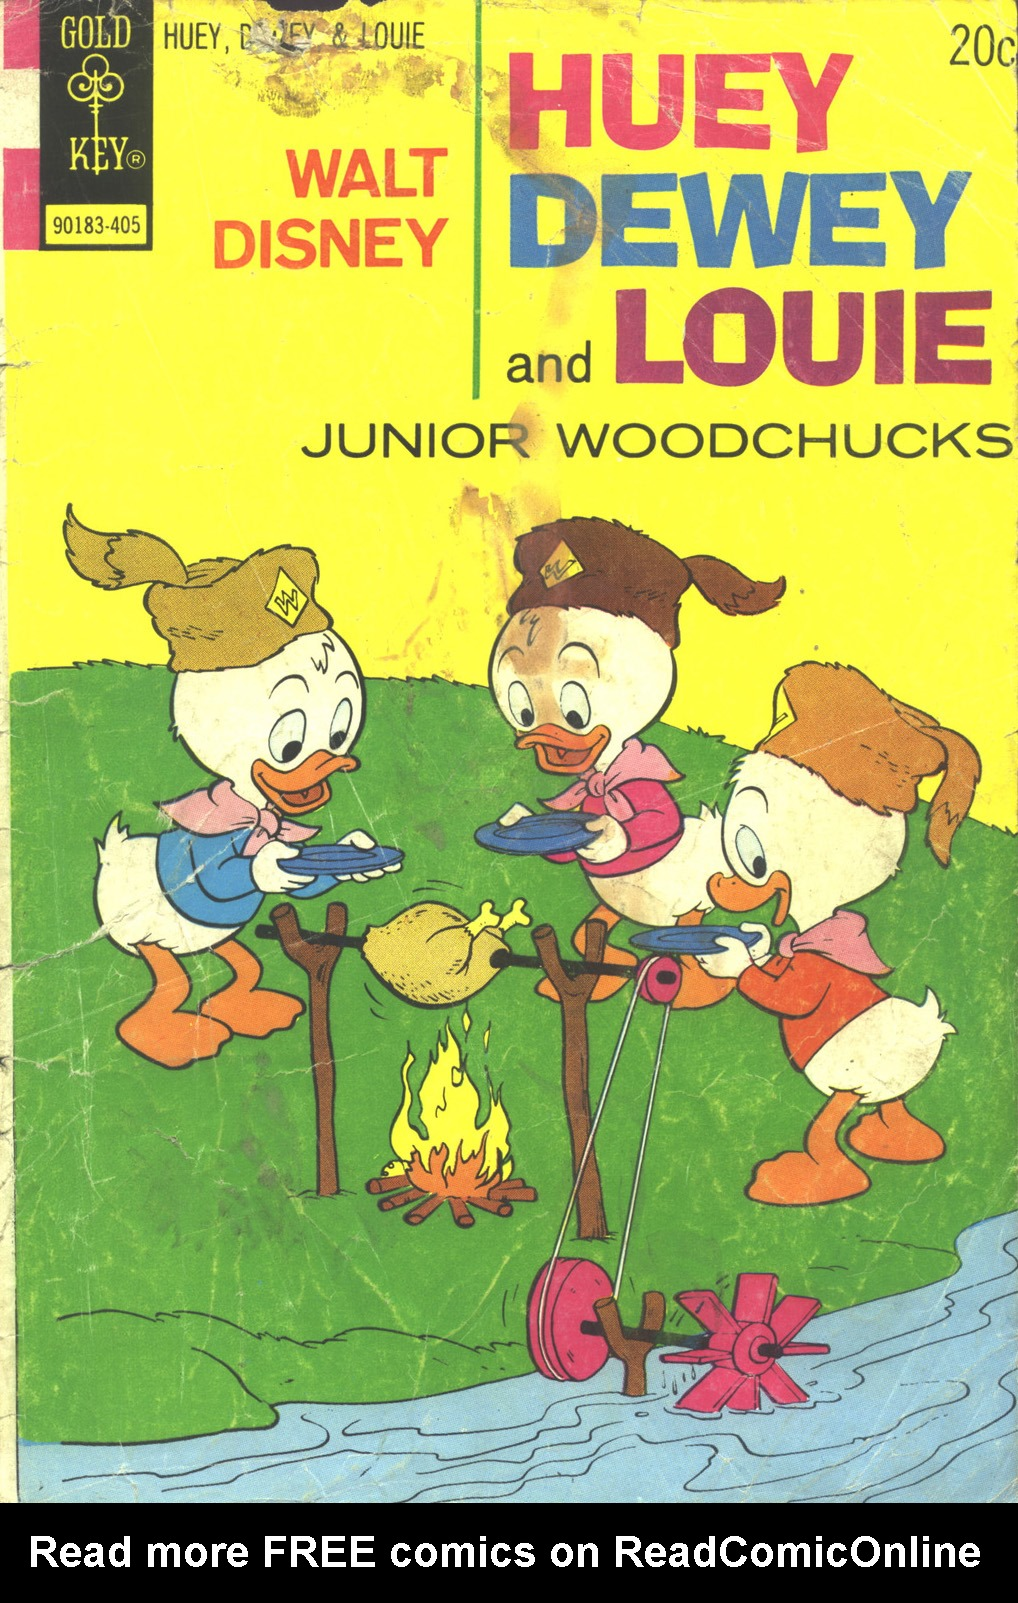 Huey, Dewey, and Louie Junior Woodchucks 26 Page 1